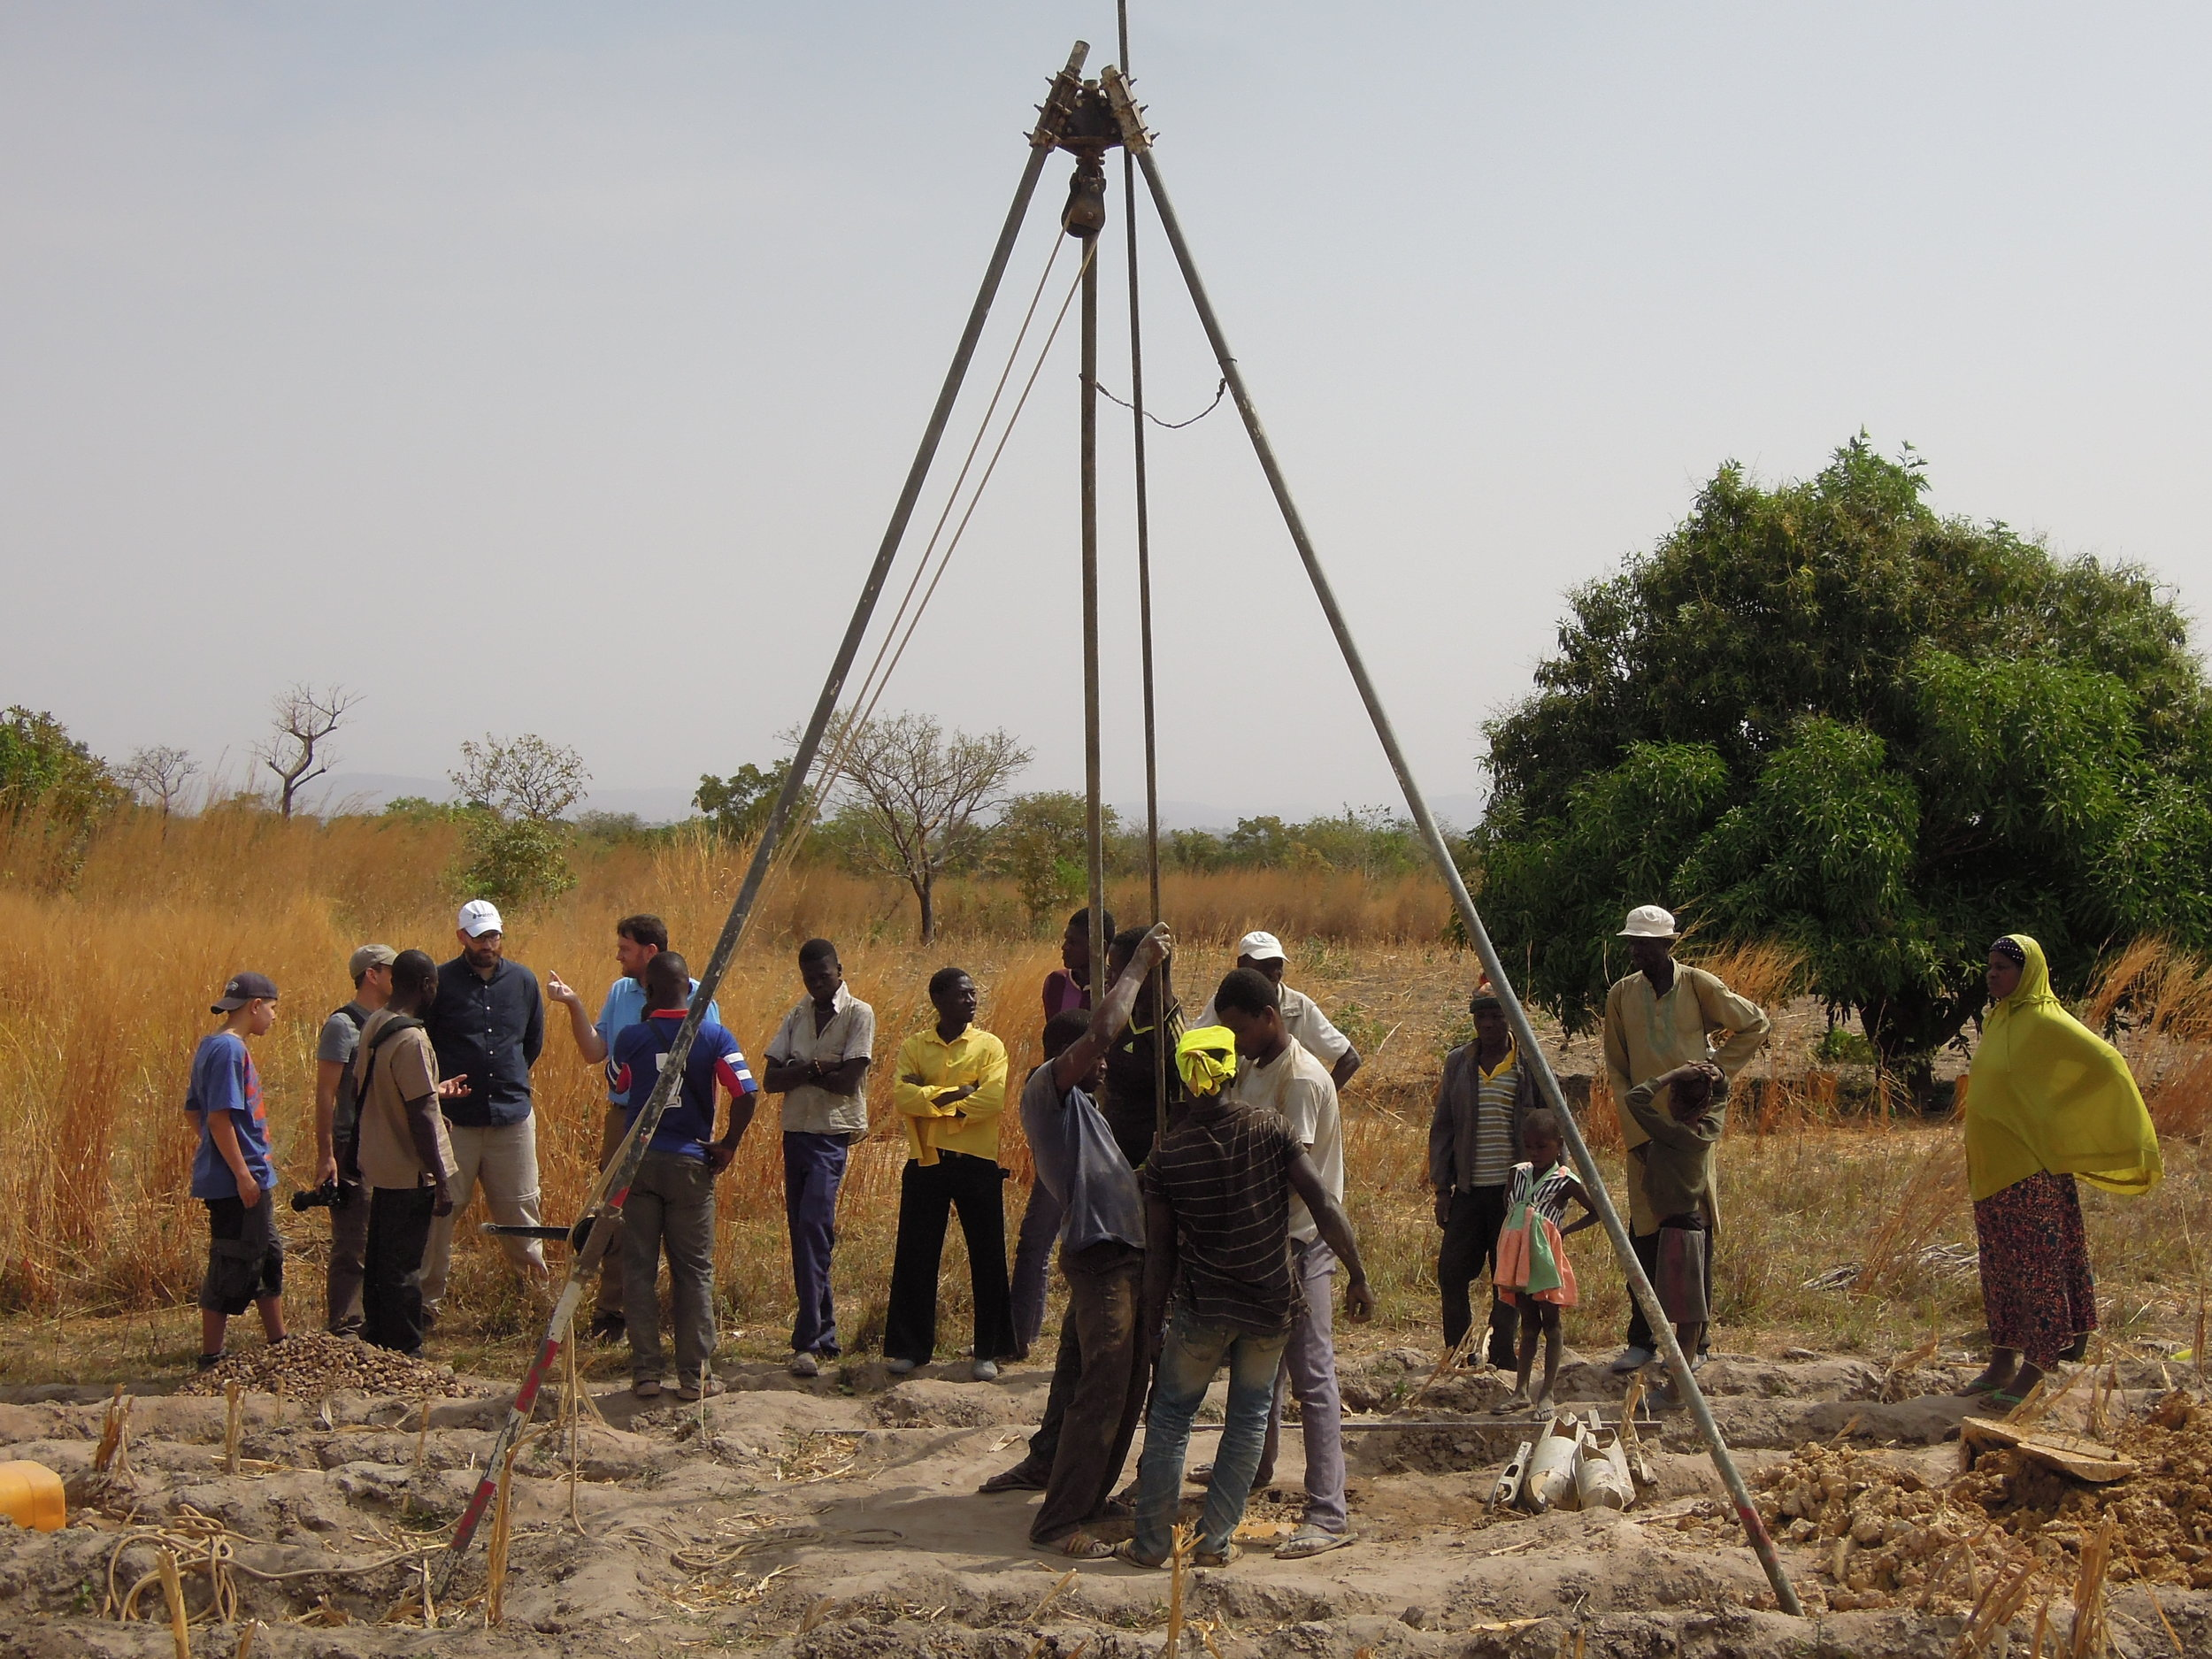 We visited this drilling team, constructing a new well in a village near Kara, Togo. Water4's drilling teams use manual drilling techniques to bore through rock and dirt.